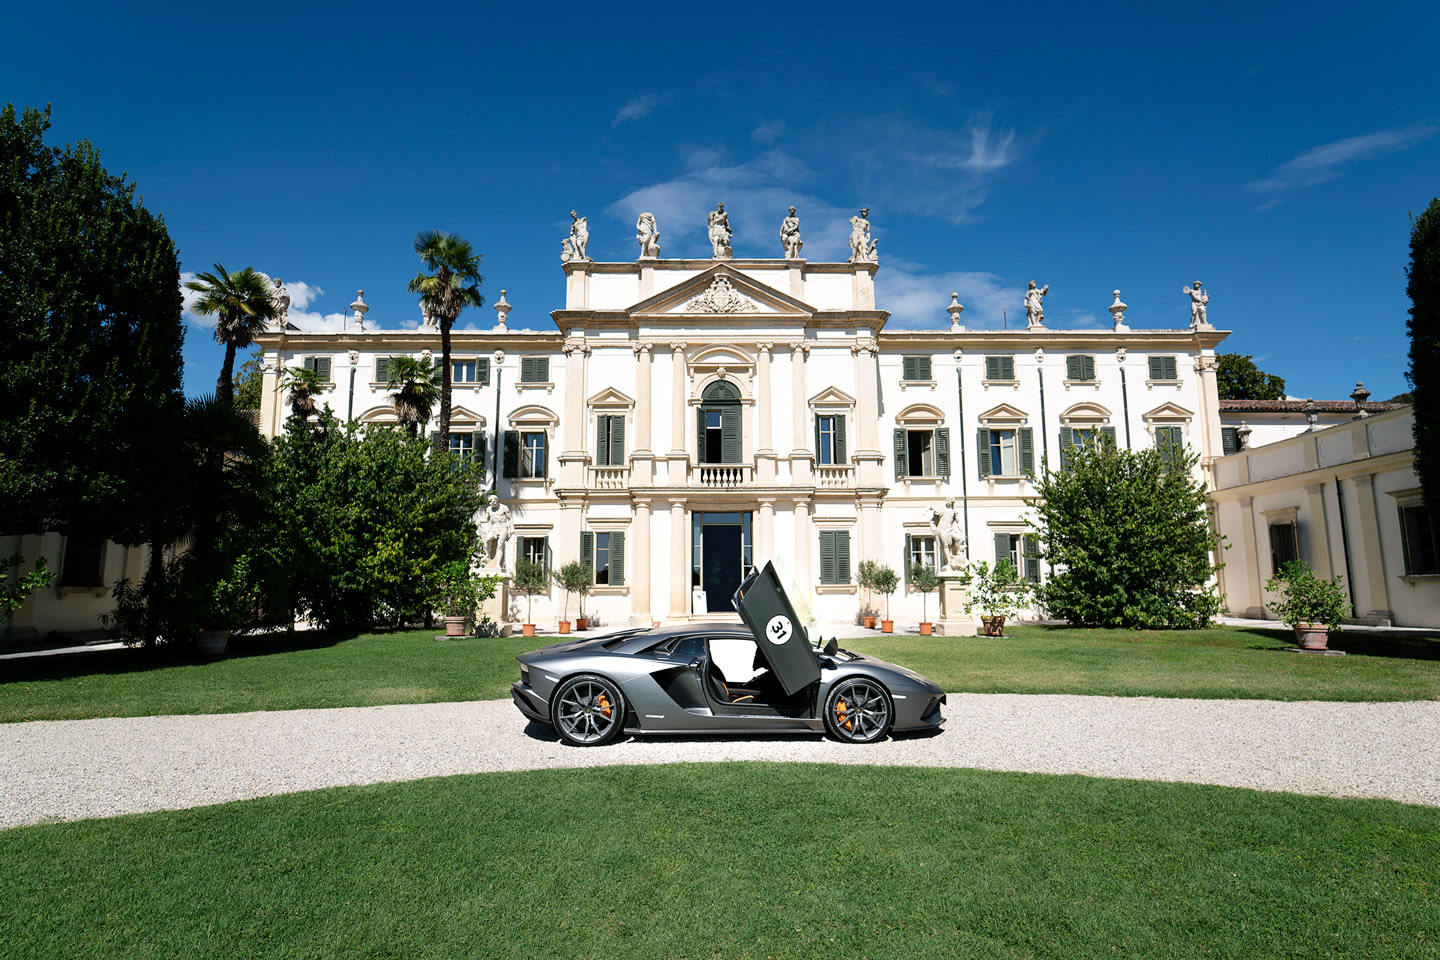 Lamborghini Automobili at Villa Mosconi Bertani